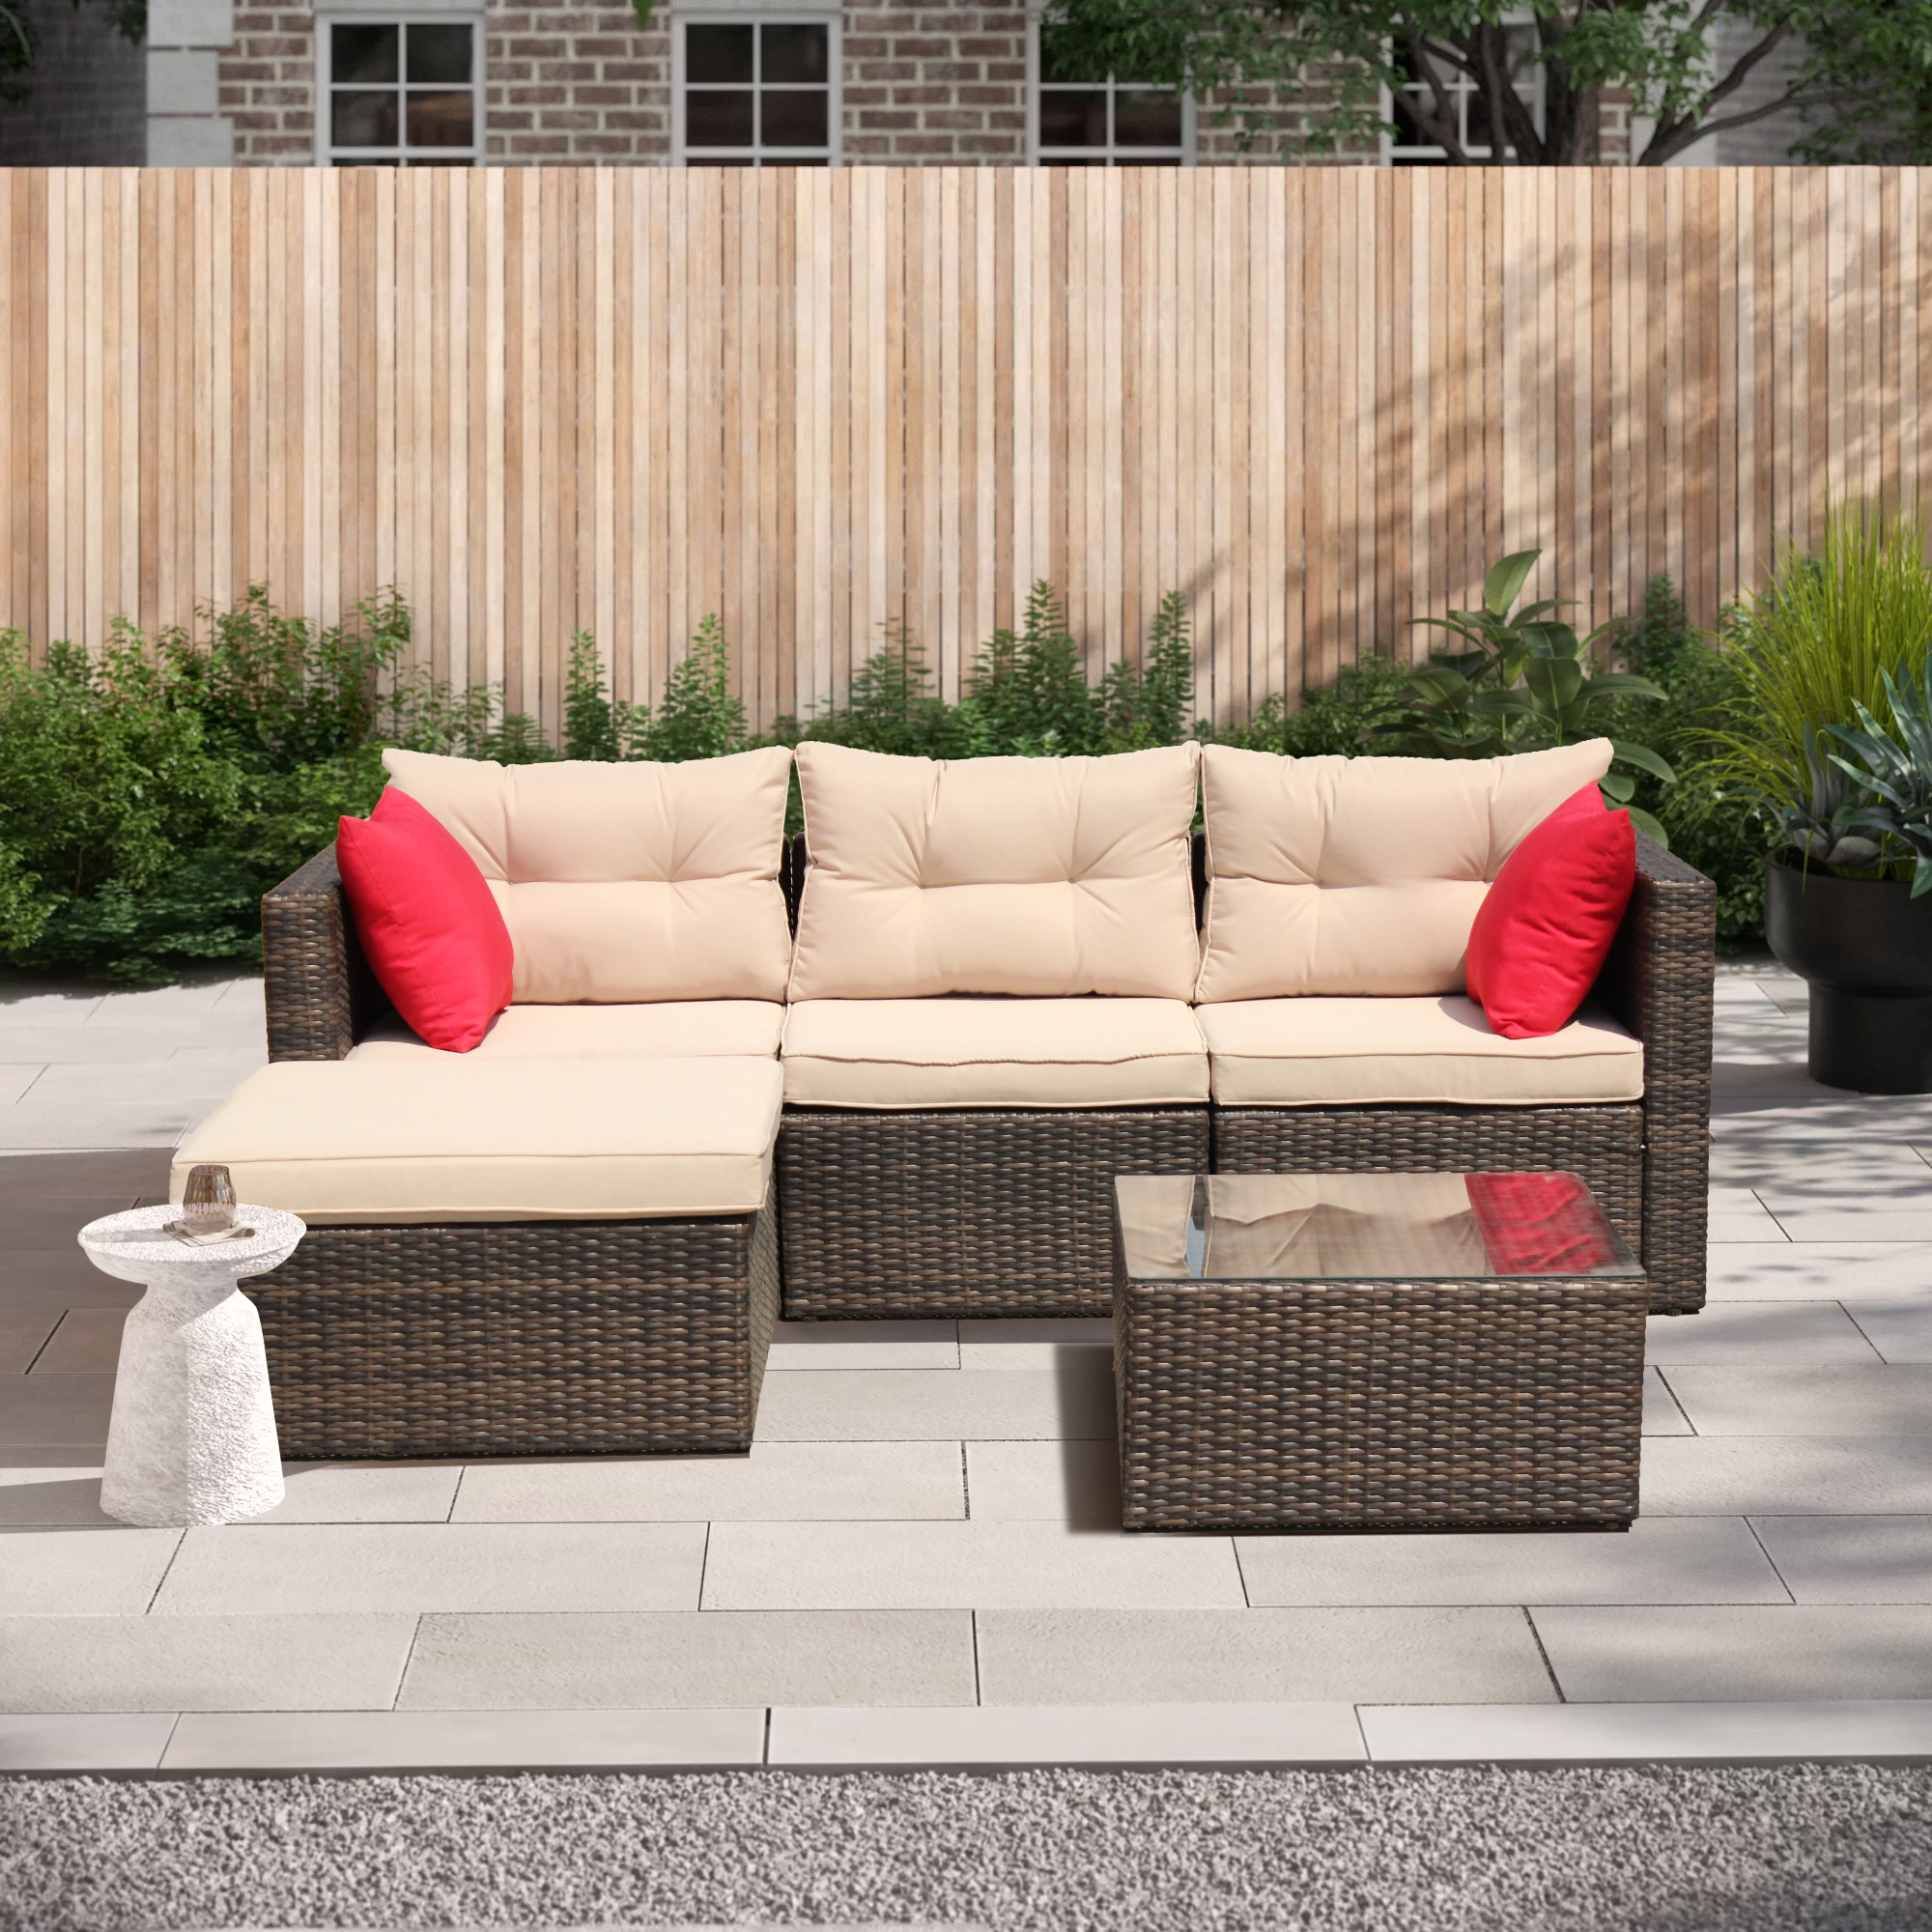 outdoor wicker sectional seating for patio 2021 upgrade 5 piece conversation furniture set w sectional chaise longue tempered glass coffee table 7